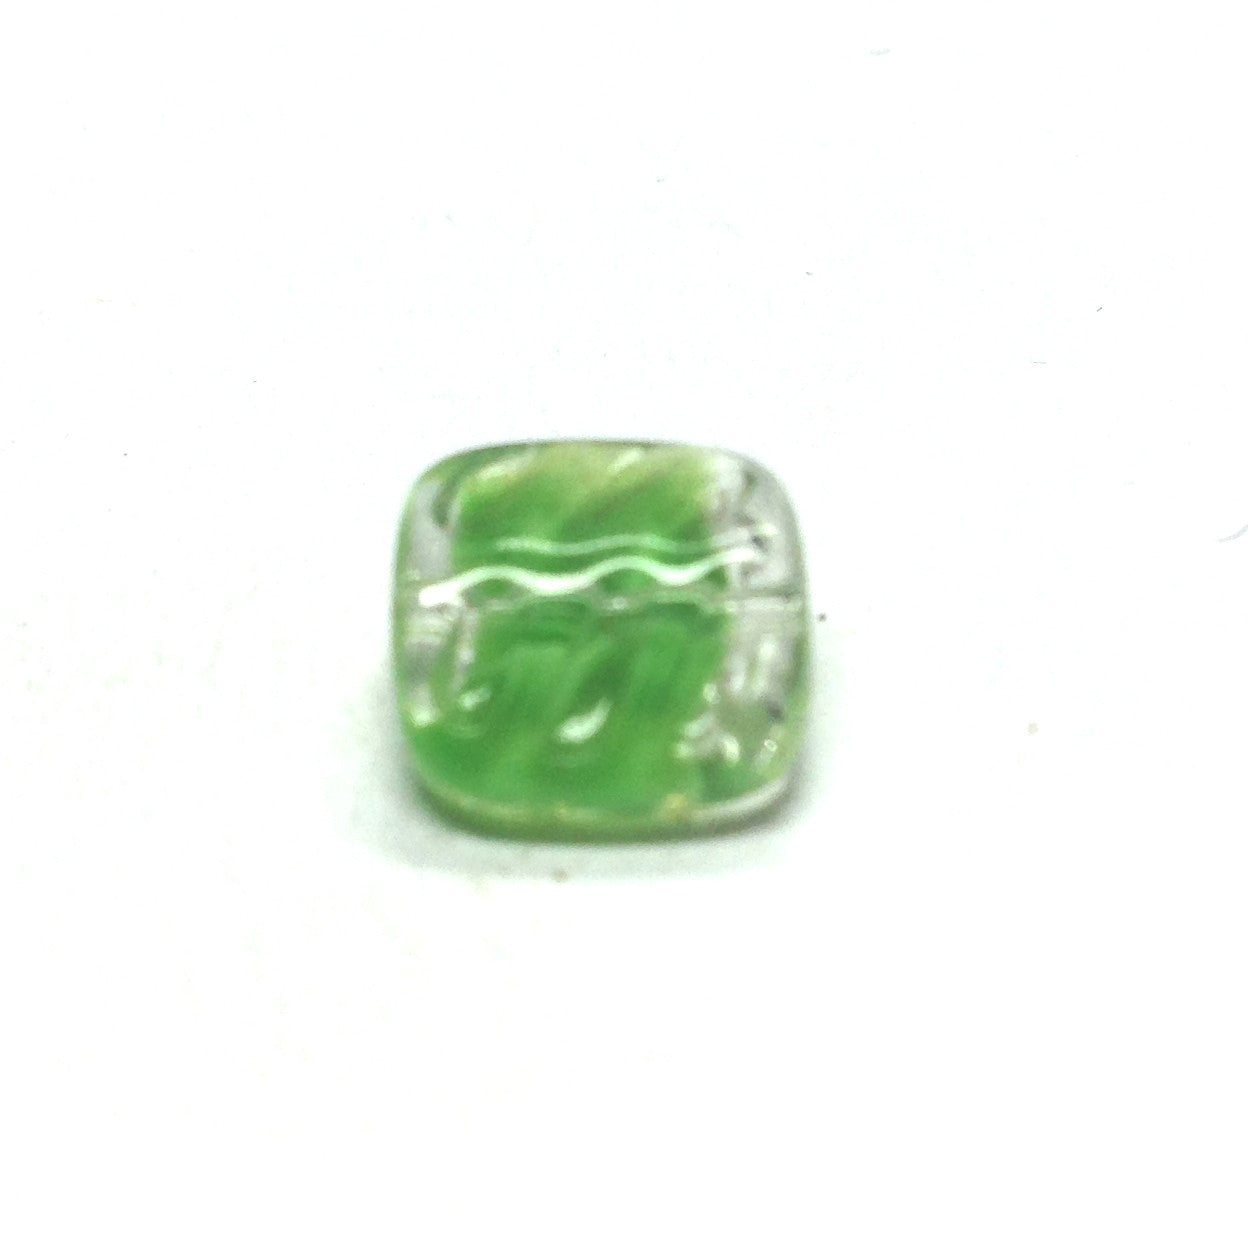 9MM Green Glass Square Bead (144 pieces)